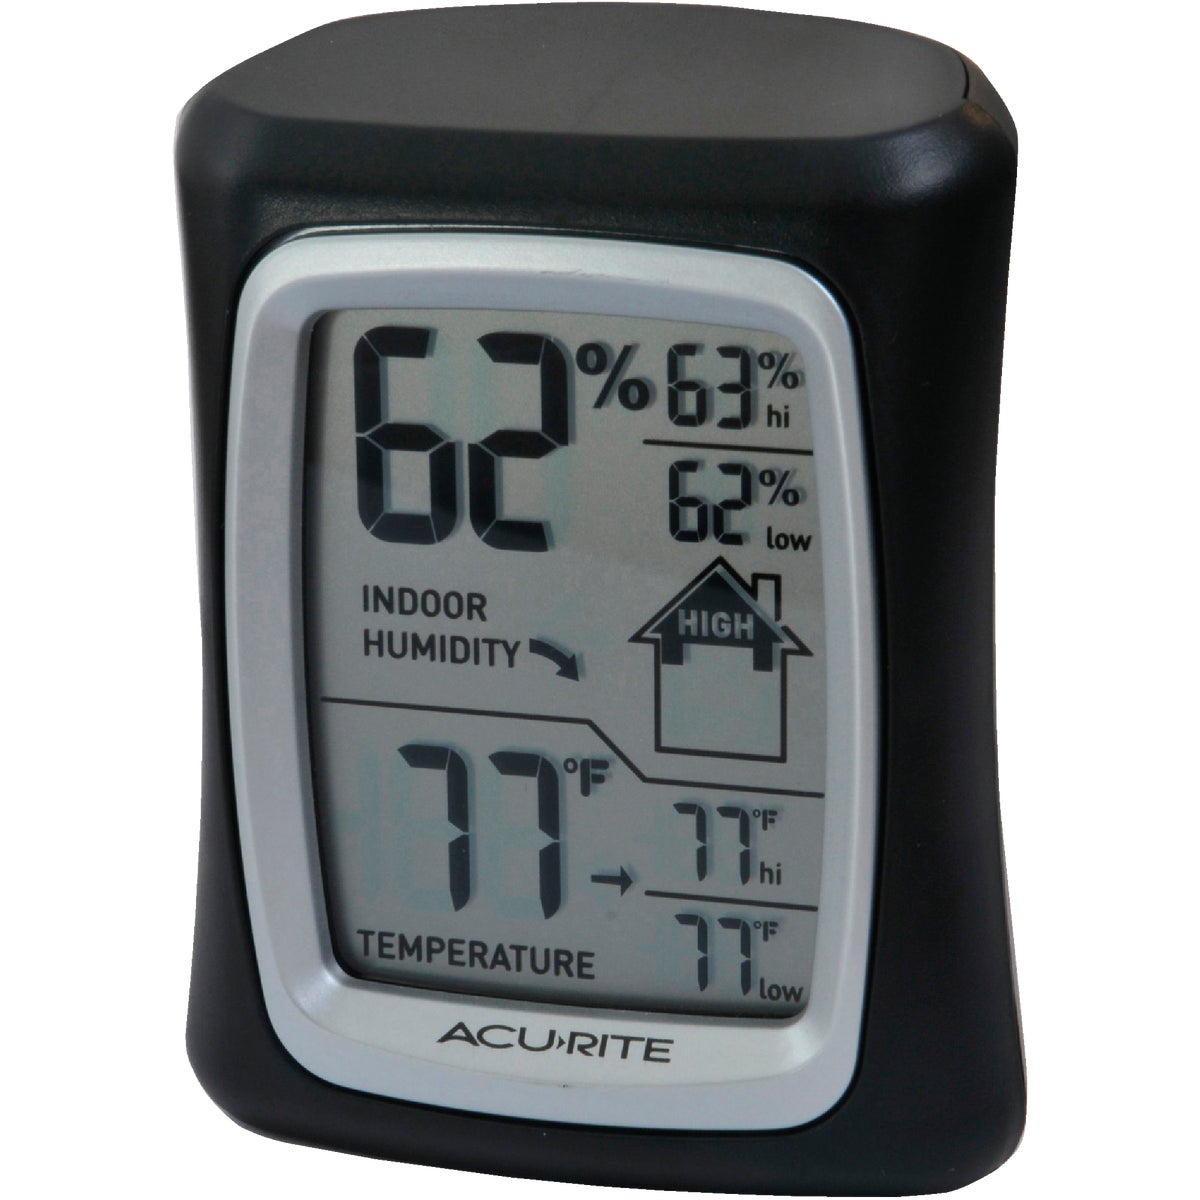 Item 632732, Monitor indoor humidity, daily highs, lows, and indoor Comfort House icon - low, high, or OK. Humidity range 20% to 95% RH.